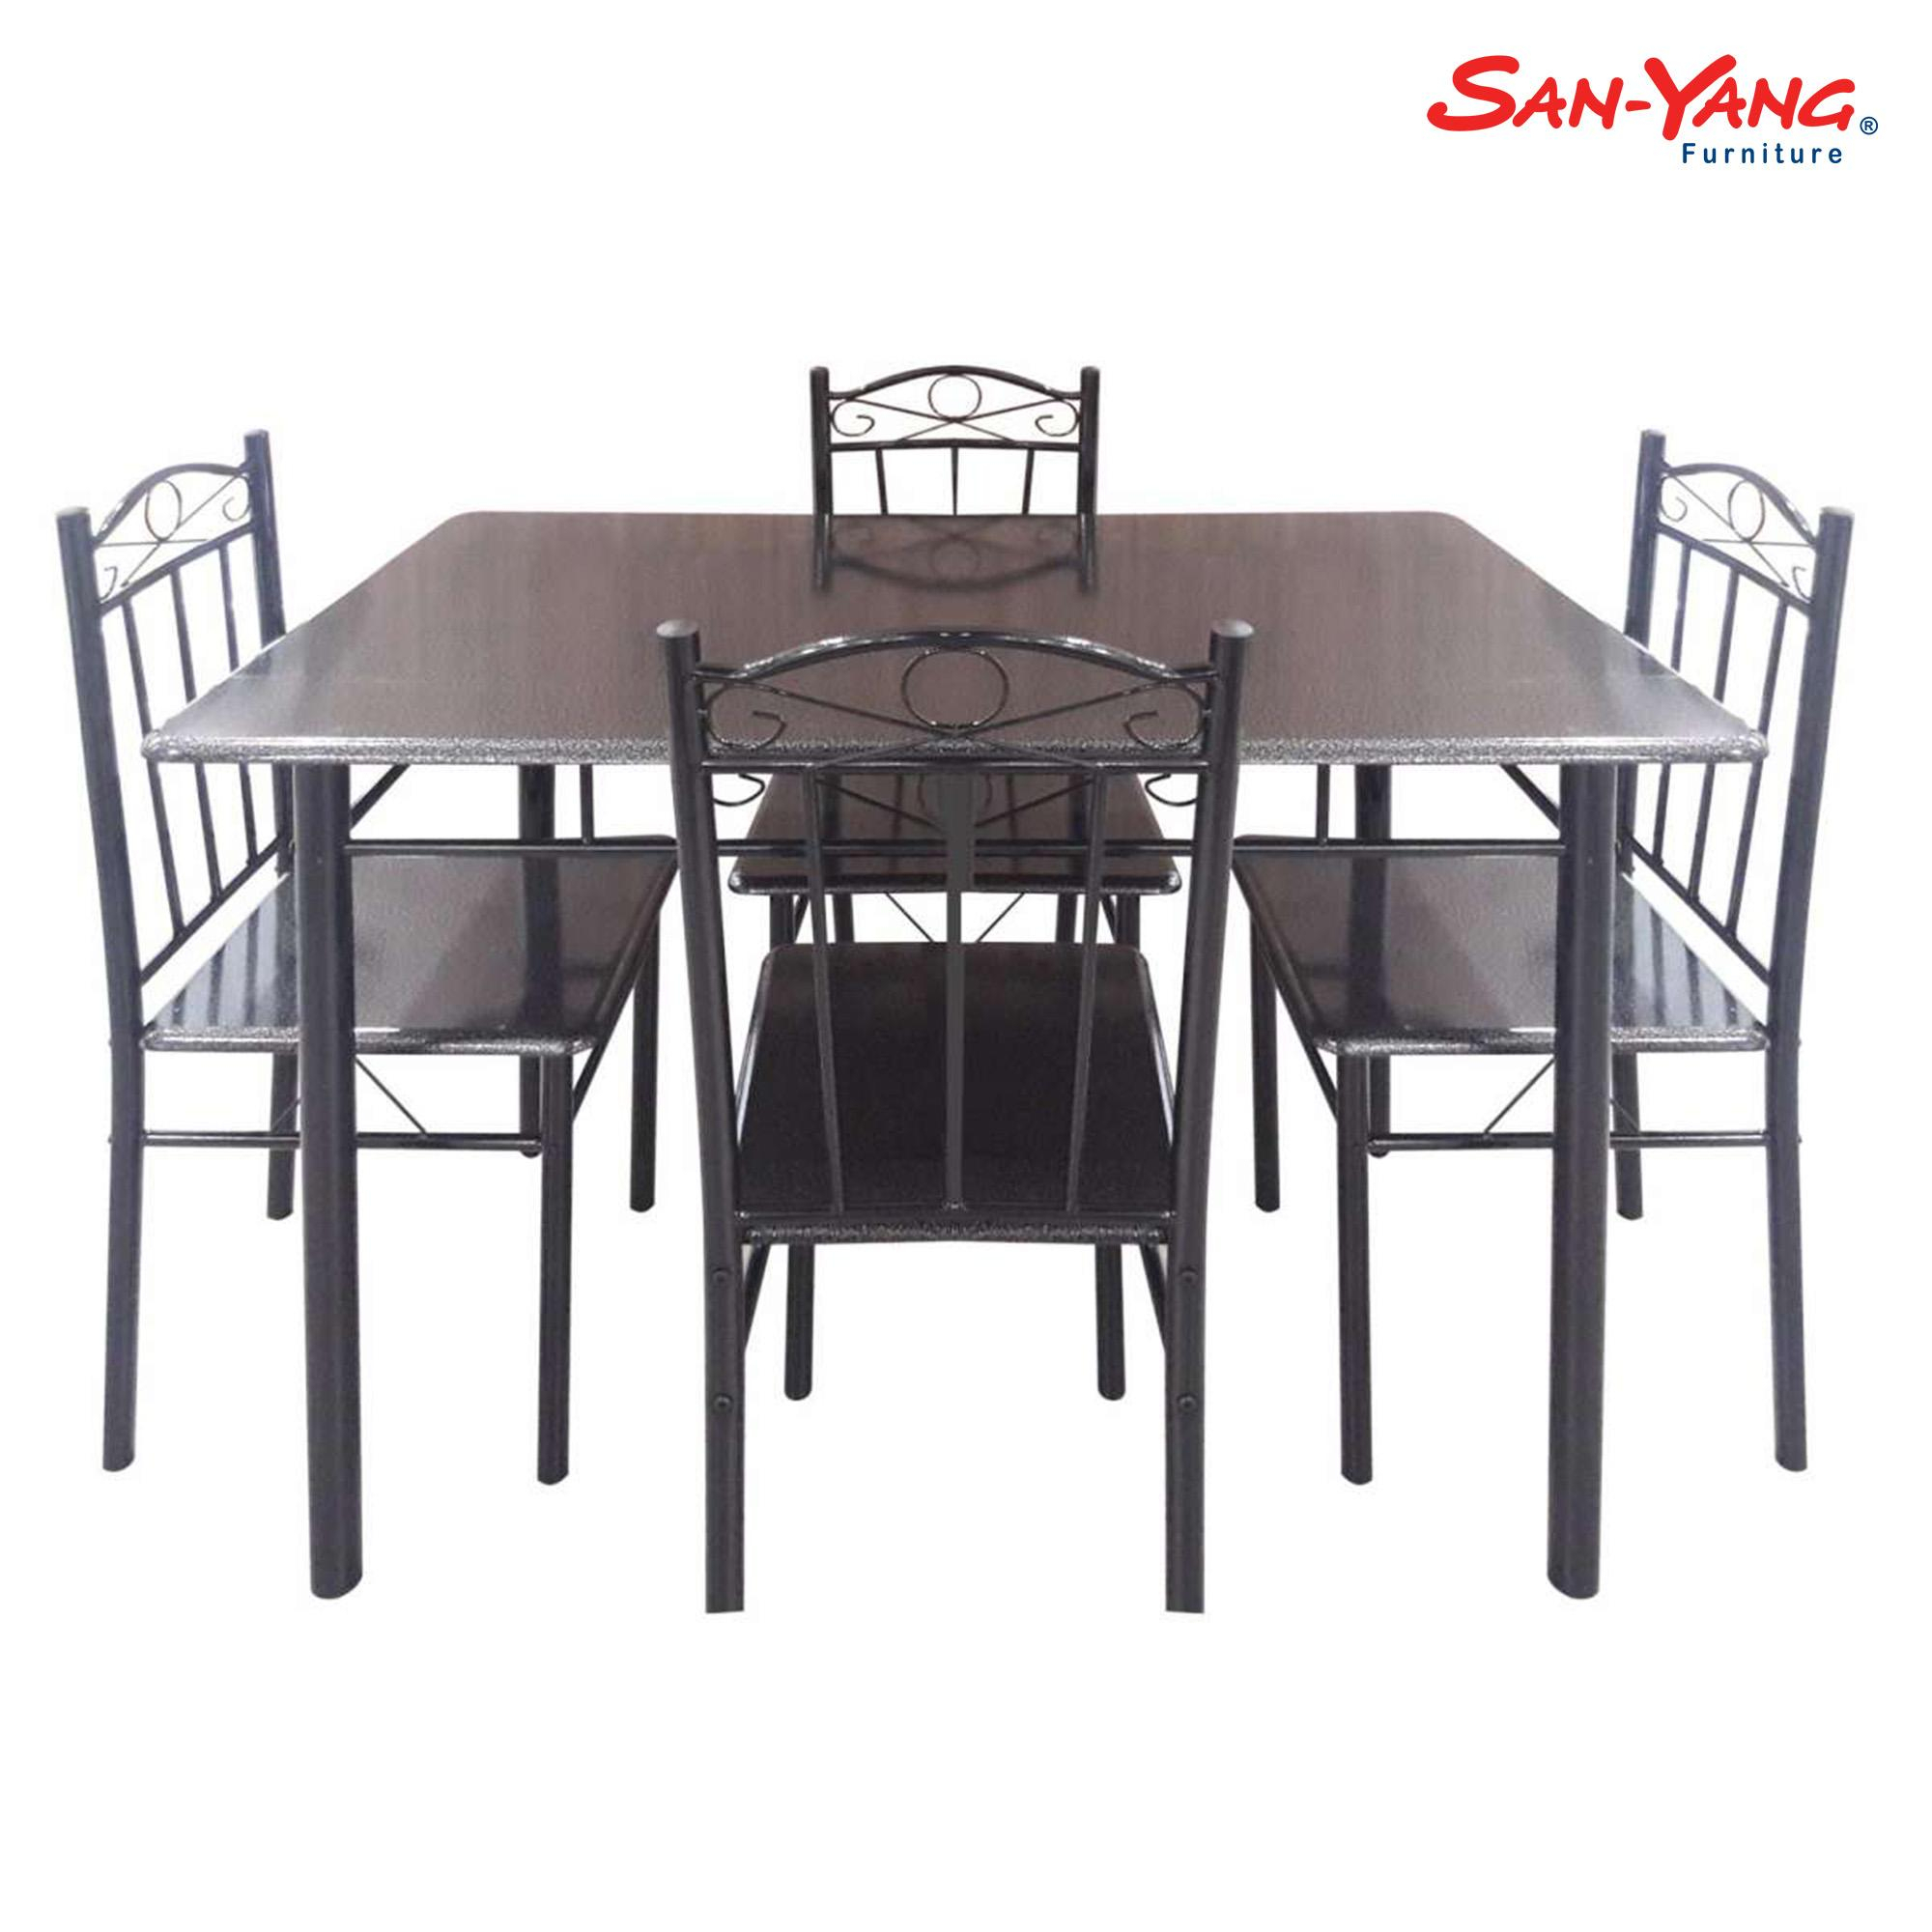 Table Kitchen Set For Sale – Home Decor Photos Gallery Throughout Newest Lillard 3 Piece Breakfast Nook Dining Sets (View 18 of 20)